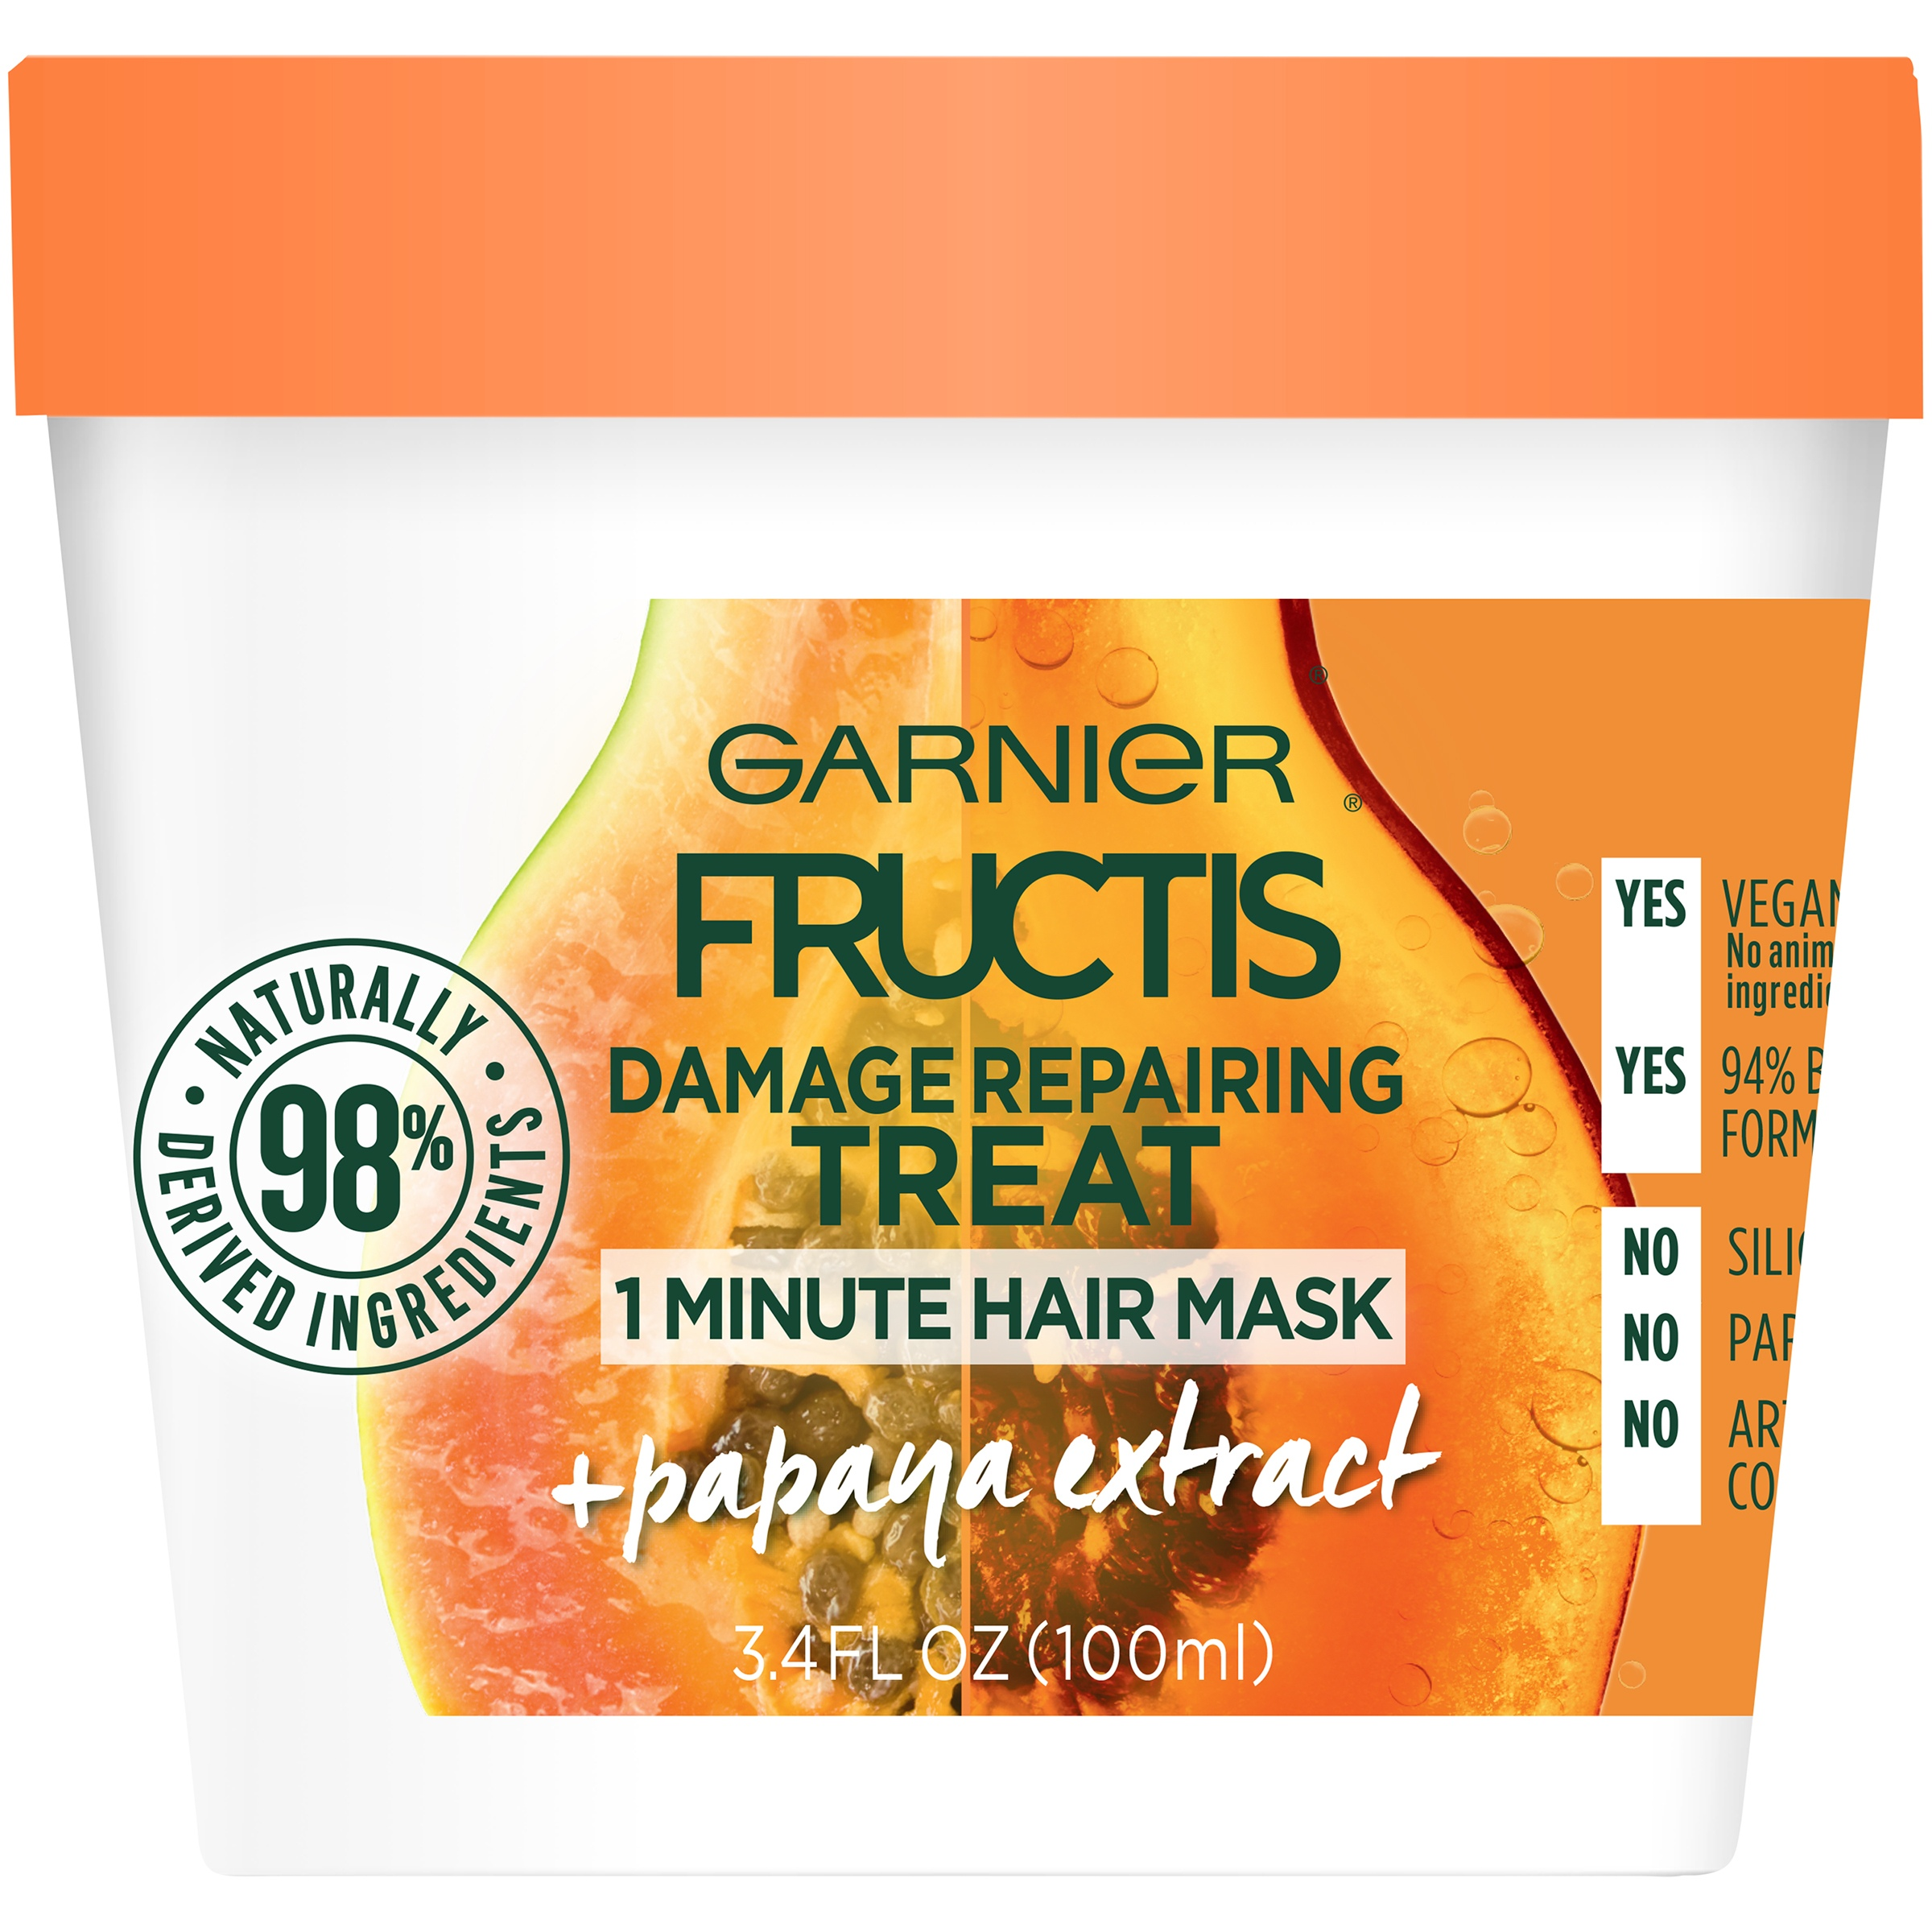 Garnier Fructis Damage Repairing Treat Papaya 1 Minute Hair Mask 3.4 FL OZ